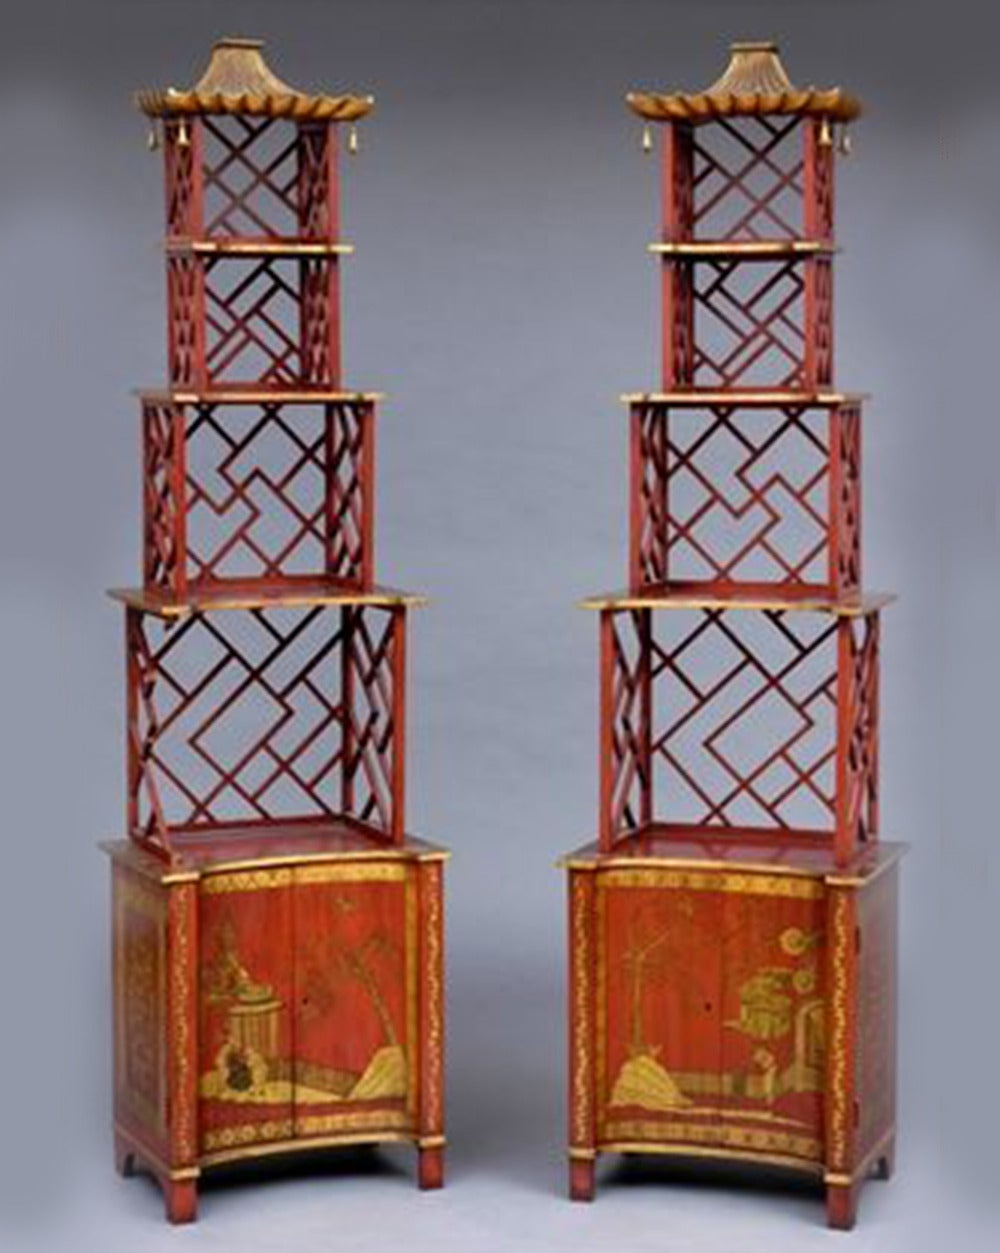 Pair of red japanned étagères in the Chinese Chippendale style. The gilt pagoda cresting is hung with bells above four graduated tiers held by open lattice and Greek key fret above a pair of concave doors painted and gilt with chinoiserie, 